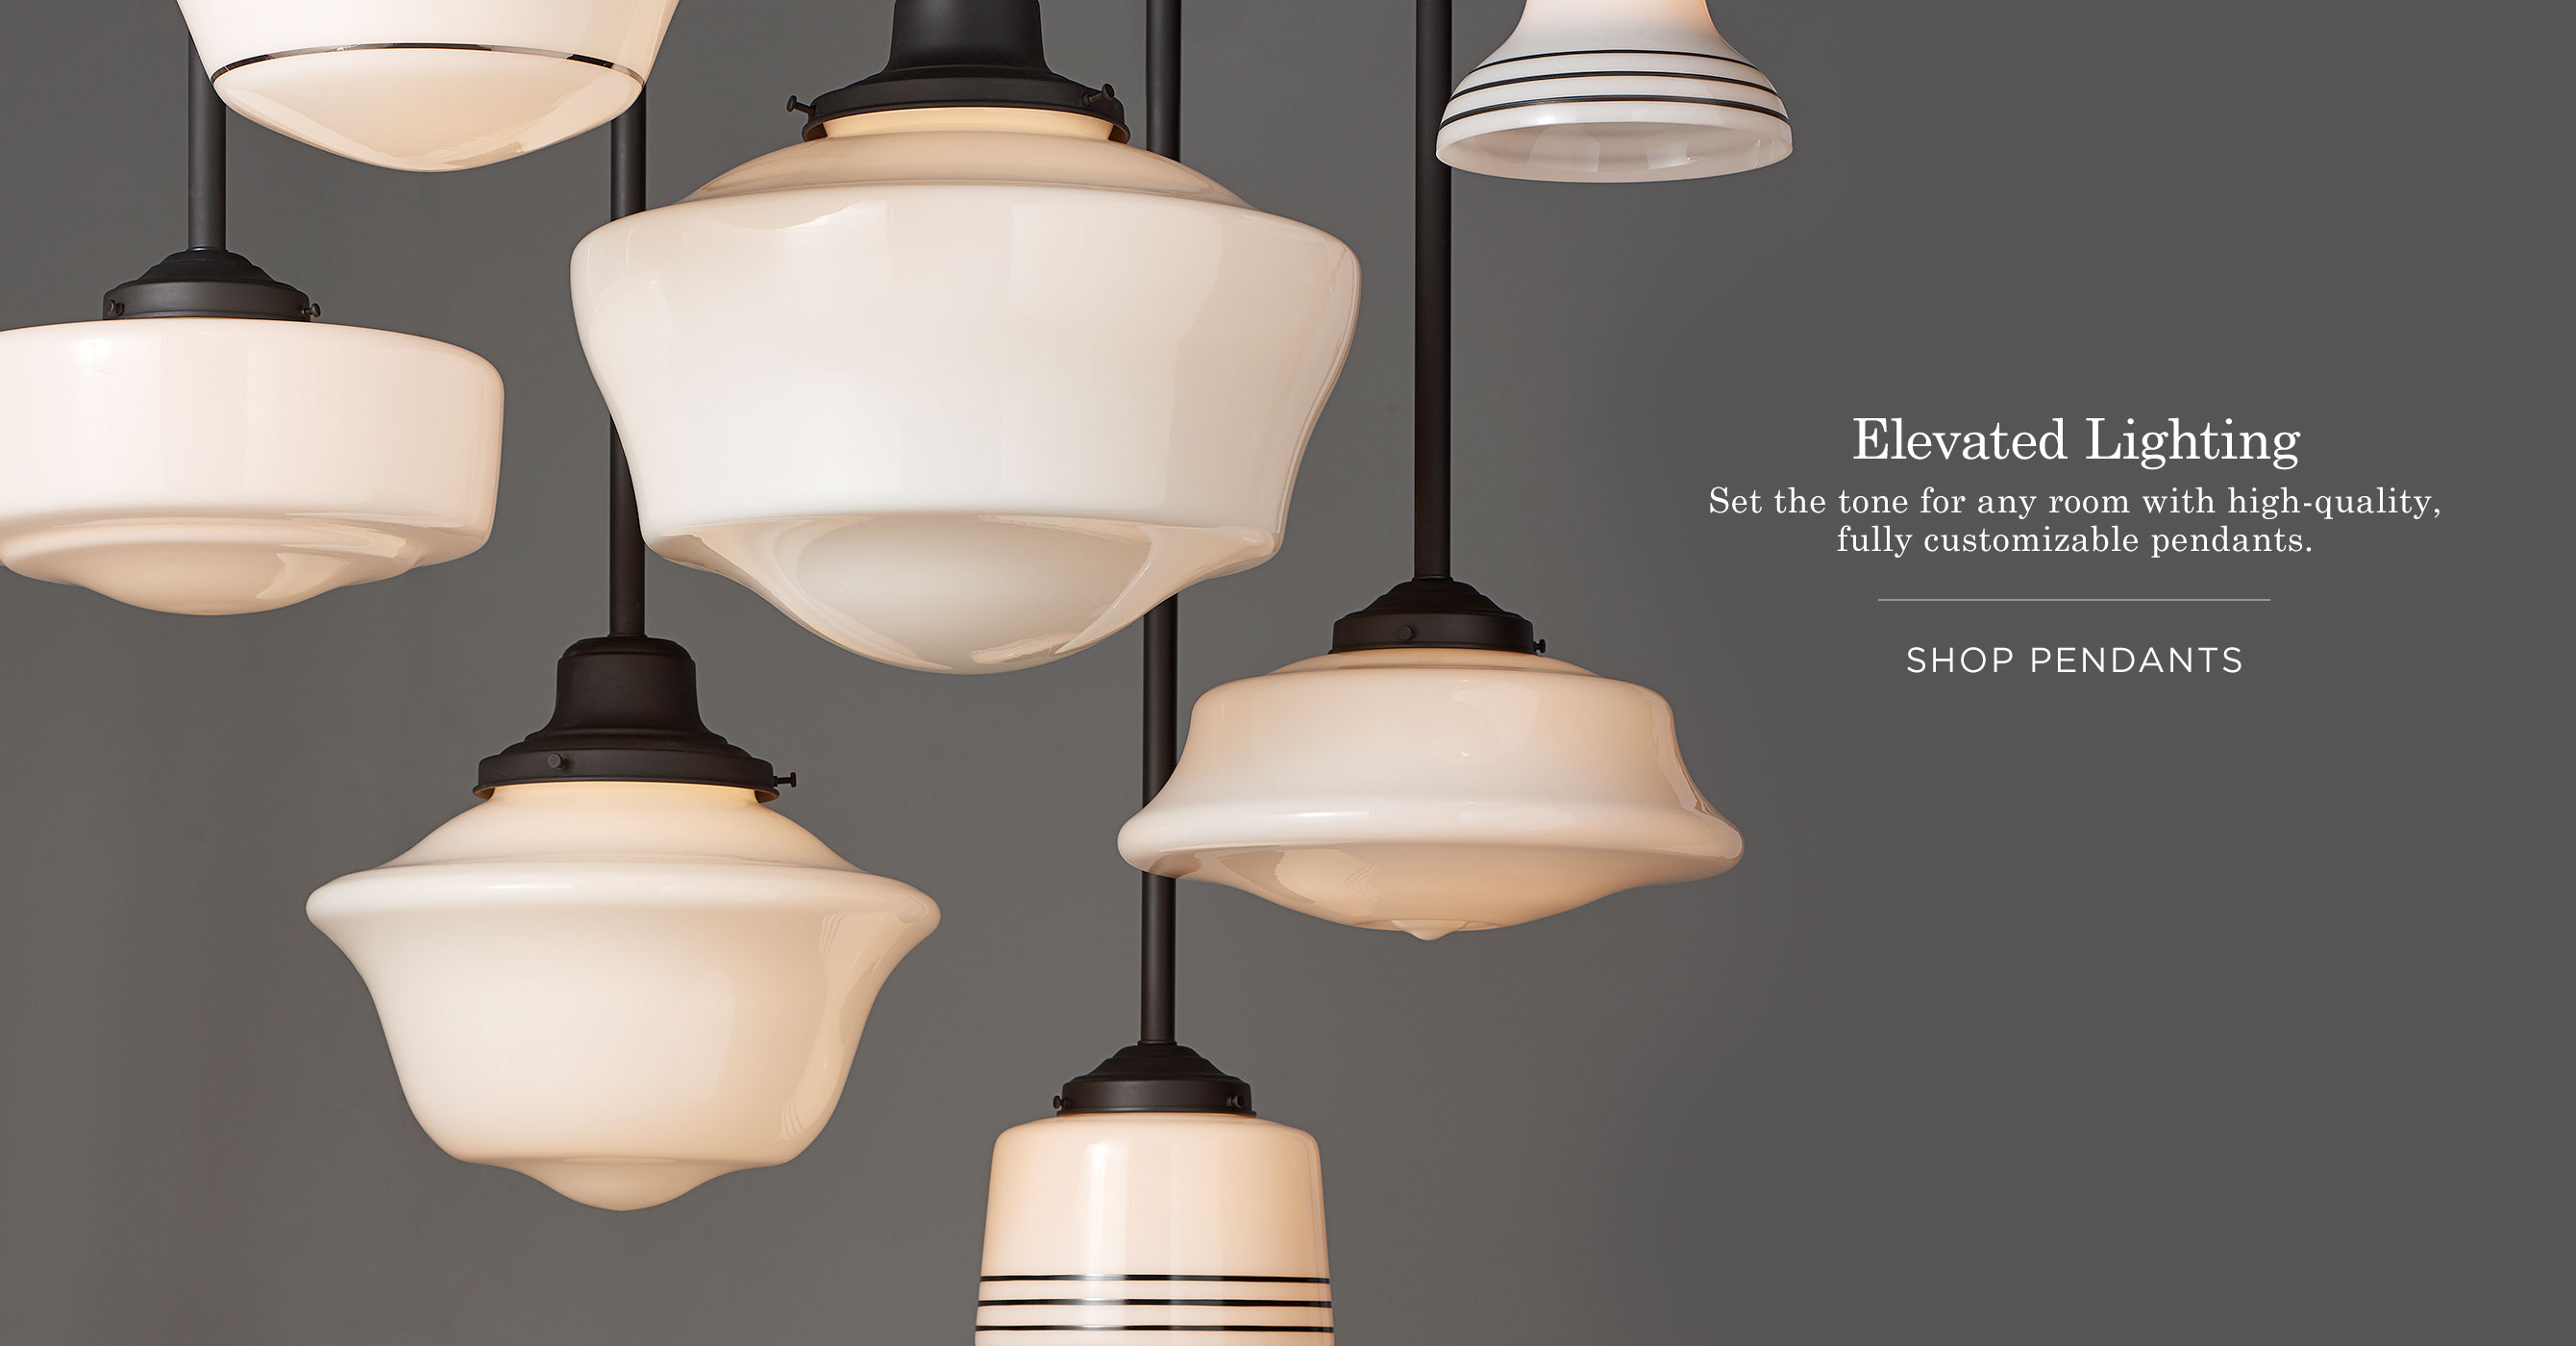 classic american lighting and house parts rejuvenation Lighting ideas & William Sonoma Lighting u2013 thejots.net